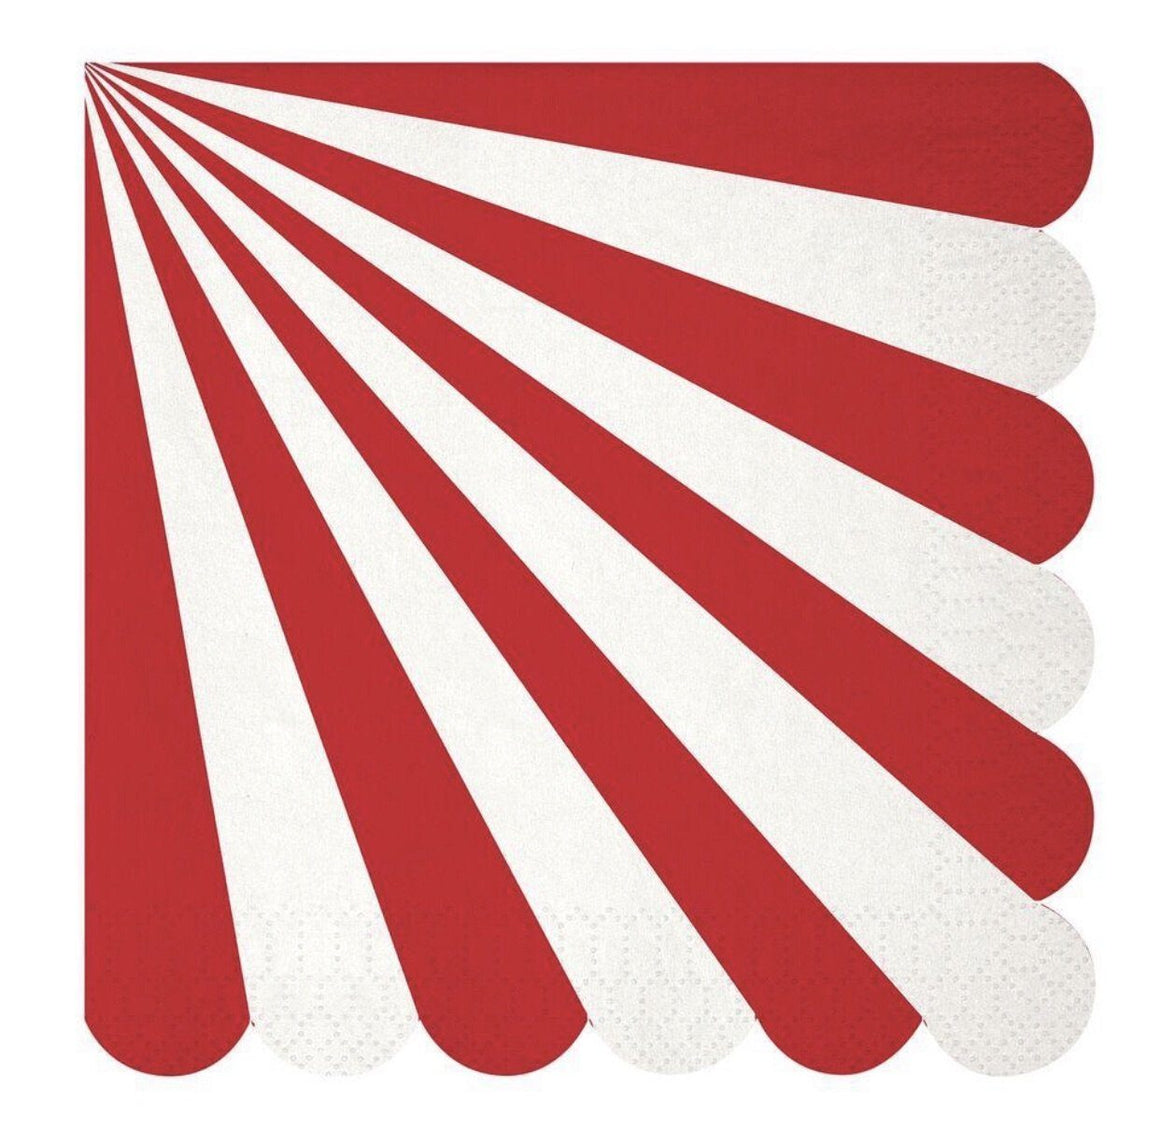 NAPKINS - LARGE PINWHEEL RED STRIPE, NAPKINS, MERI MERI - Bon + Co. Party Studio